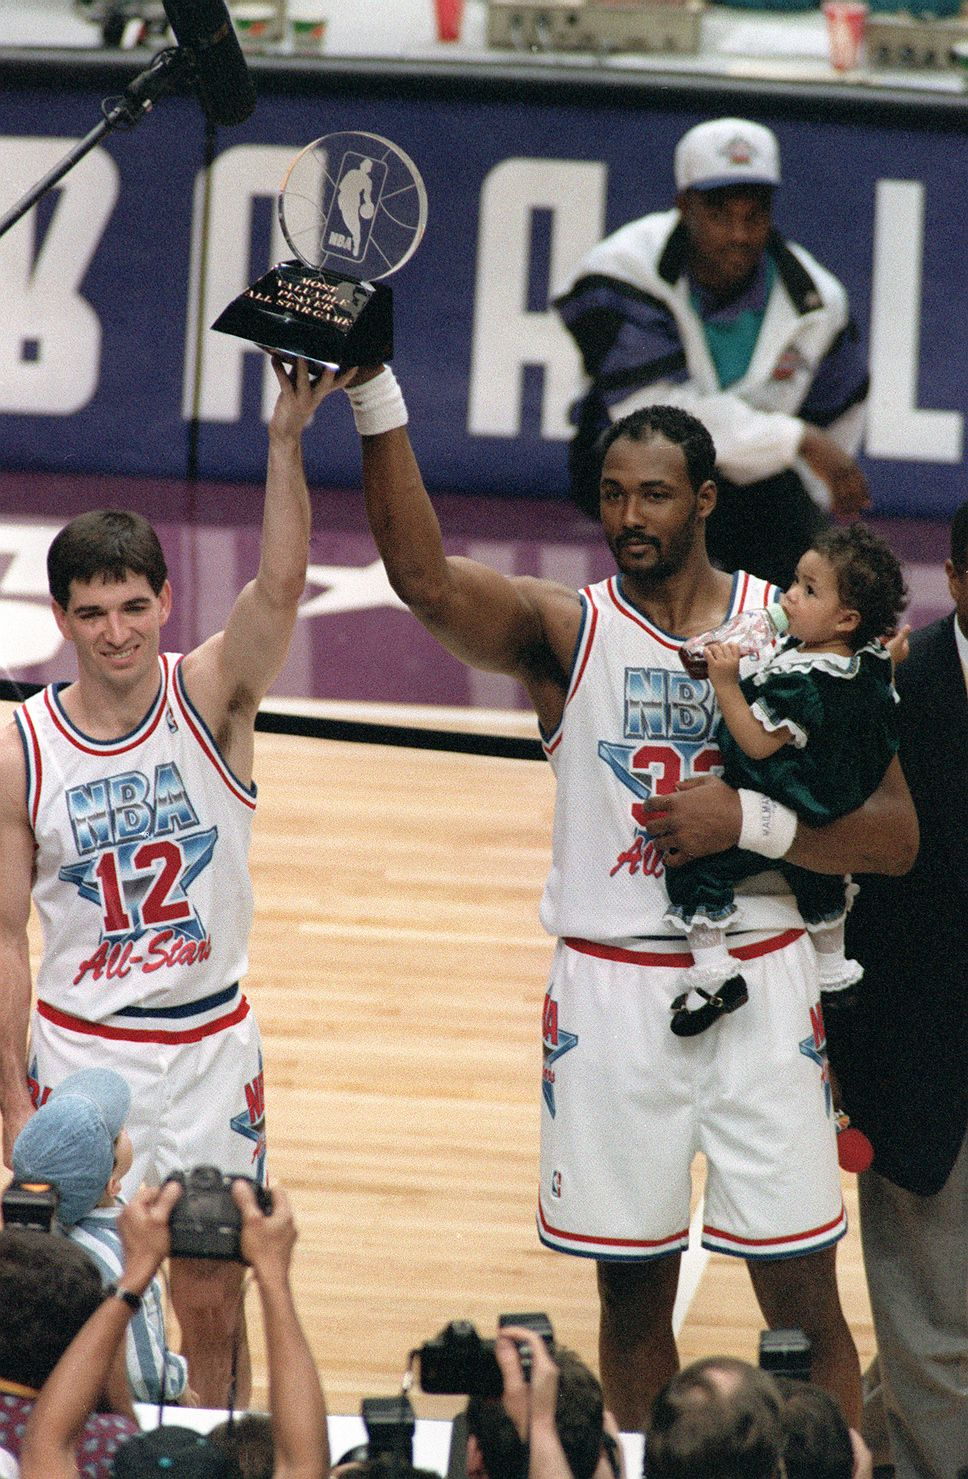 69e7fba885b Utah Jazz teammates and co-Most Valuable Player winners John Stockton,  left, and Karl Malone hold up the All-Star MVP trophy after playing for the  West team ...